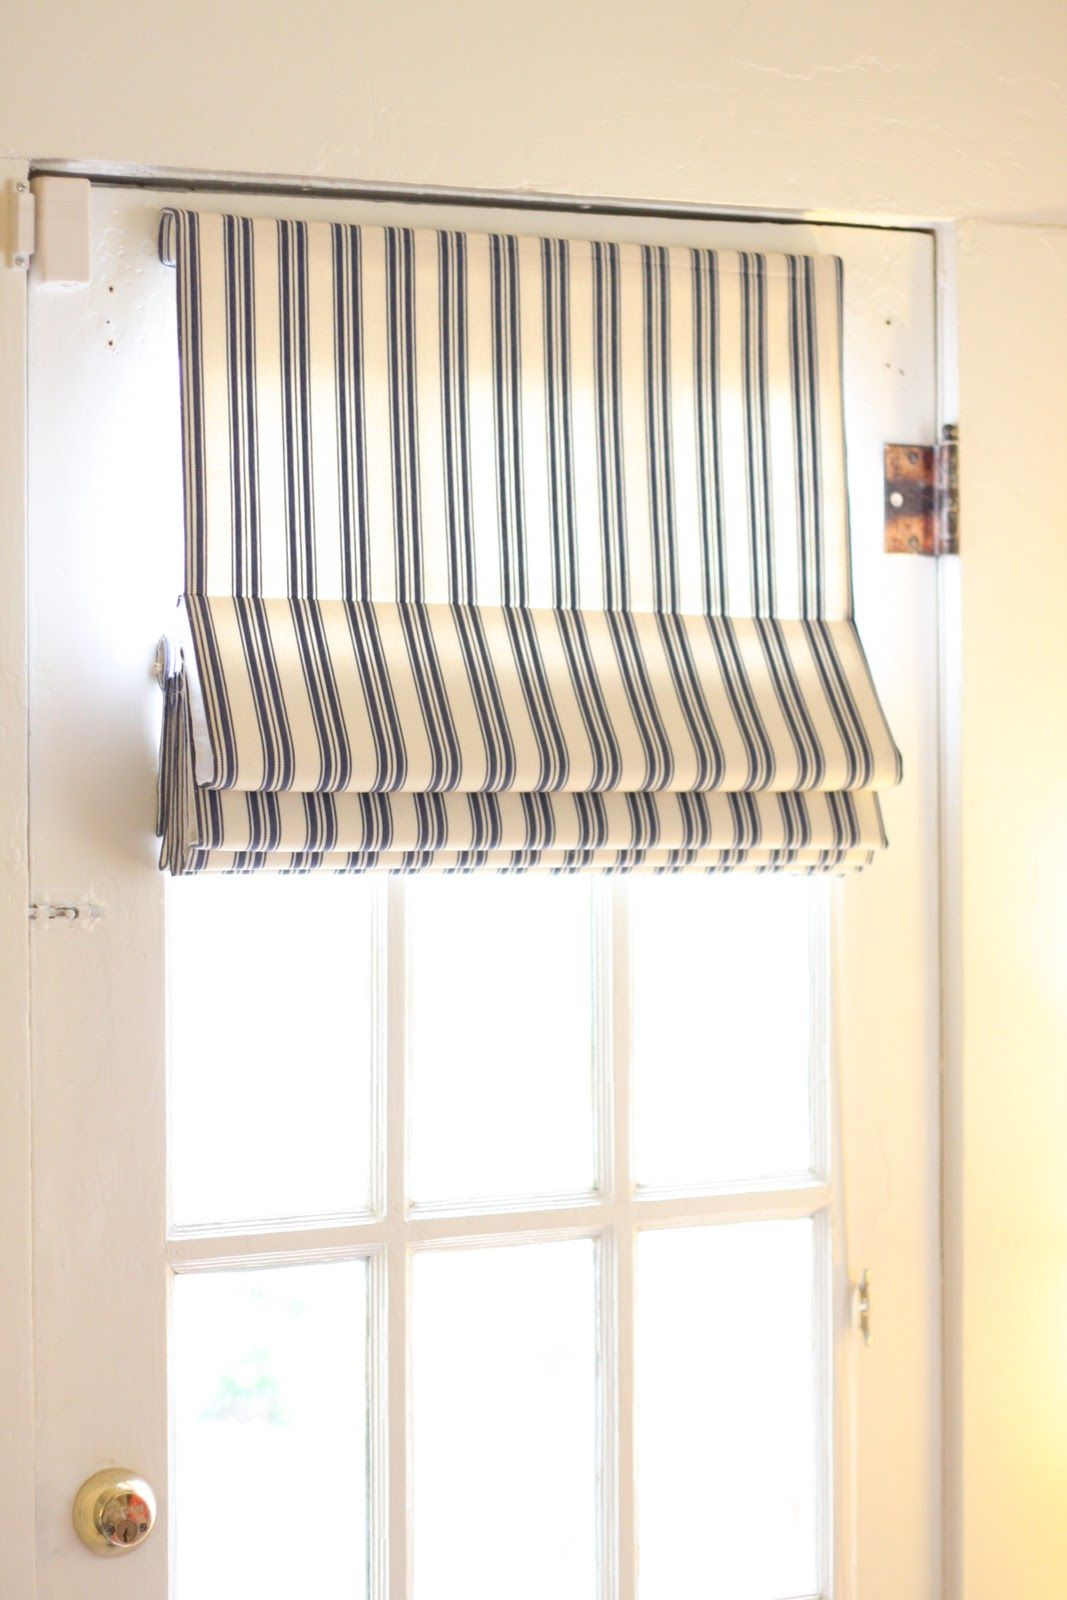 [+] Clever Ideas For A Kitchen Door Curtain From Pinterest